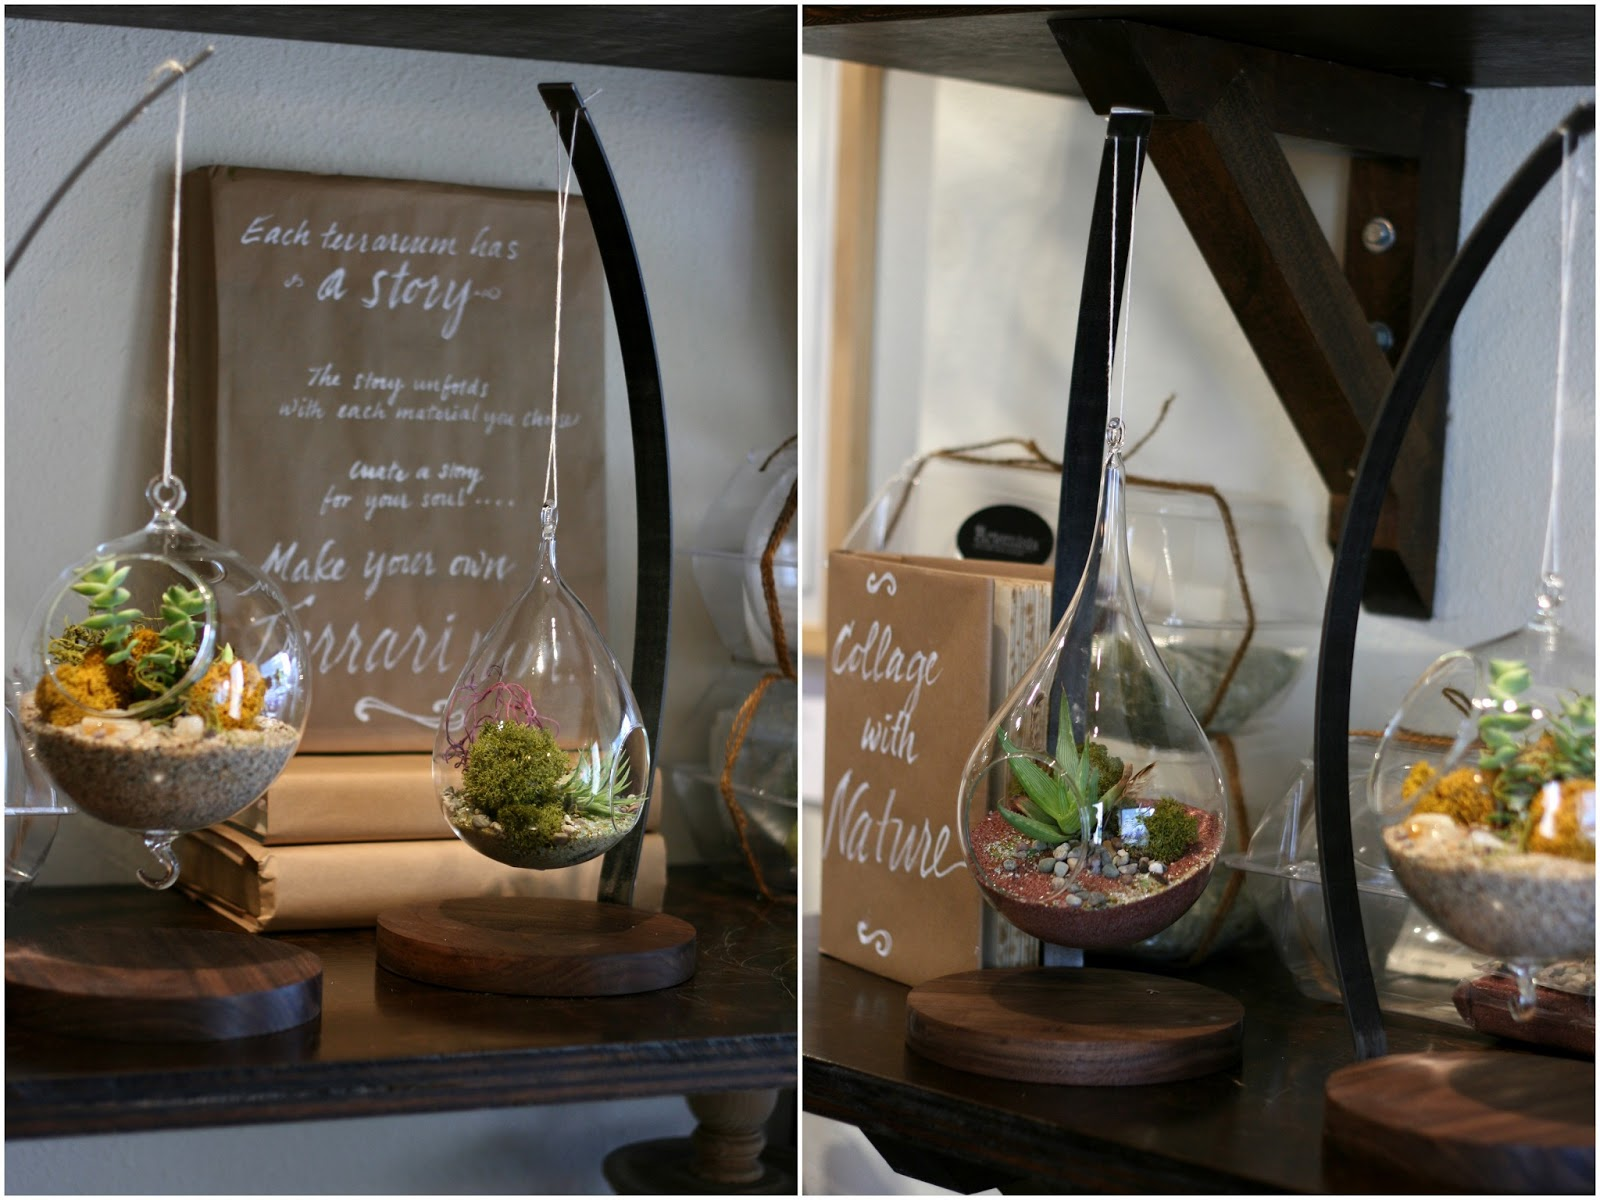 The Greatest Little Terrarium Shop And My First Attempt